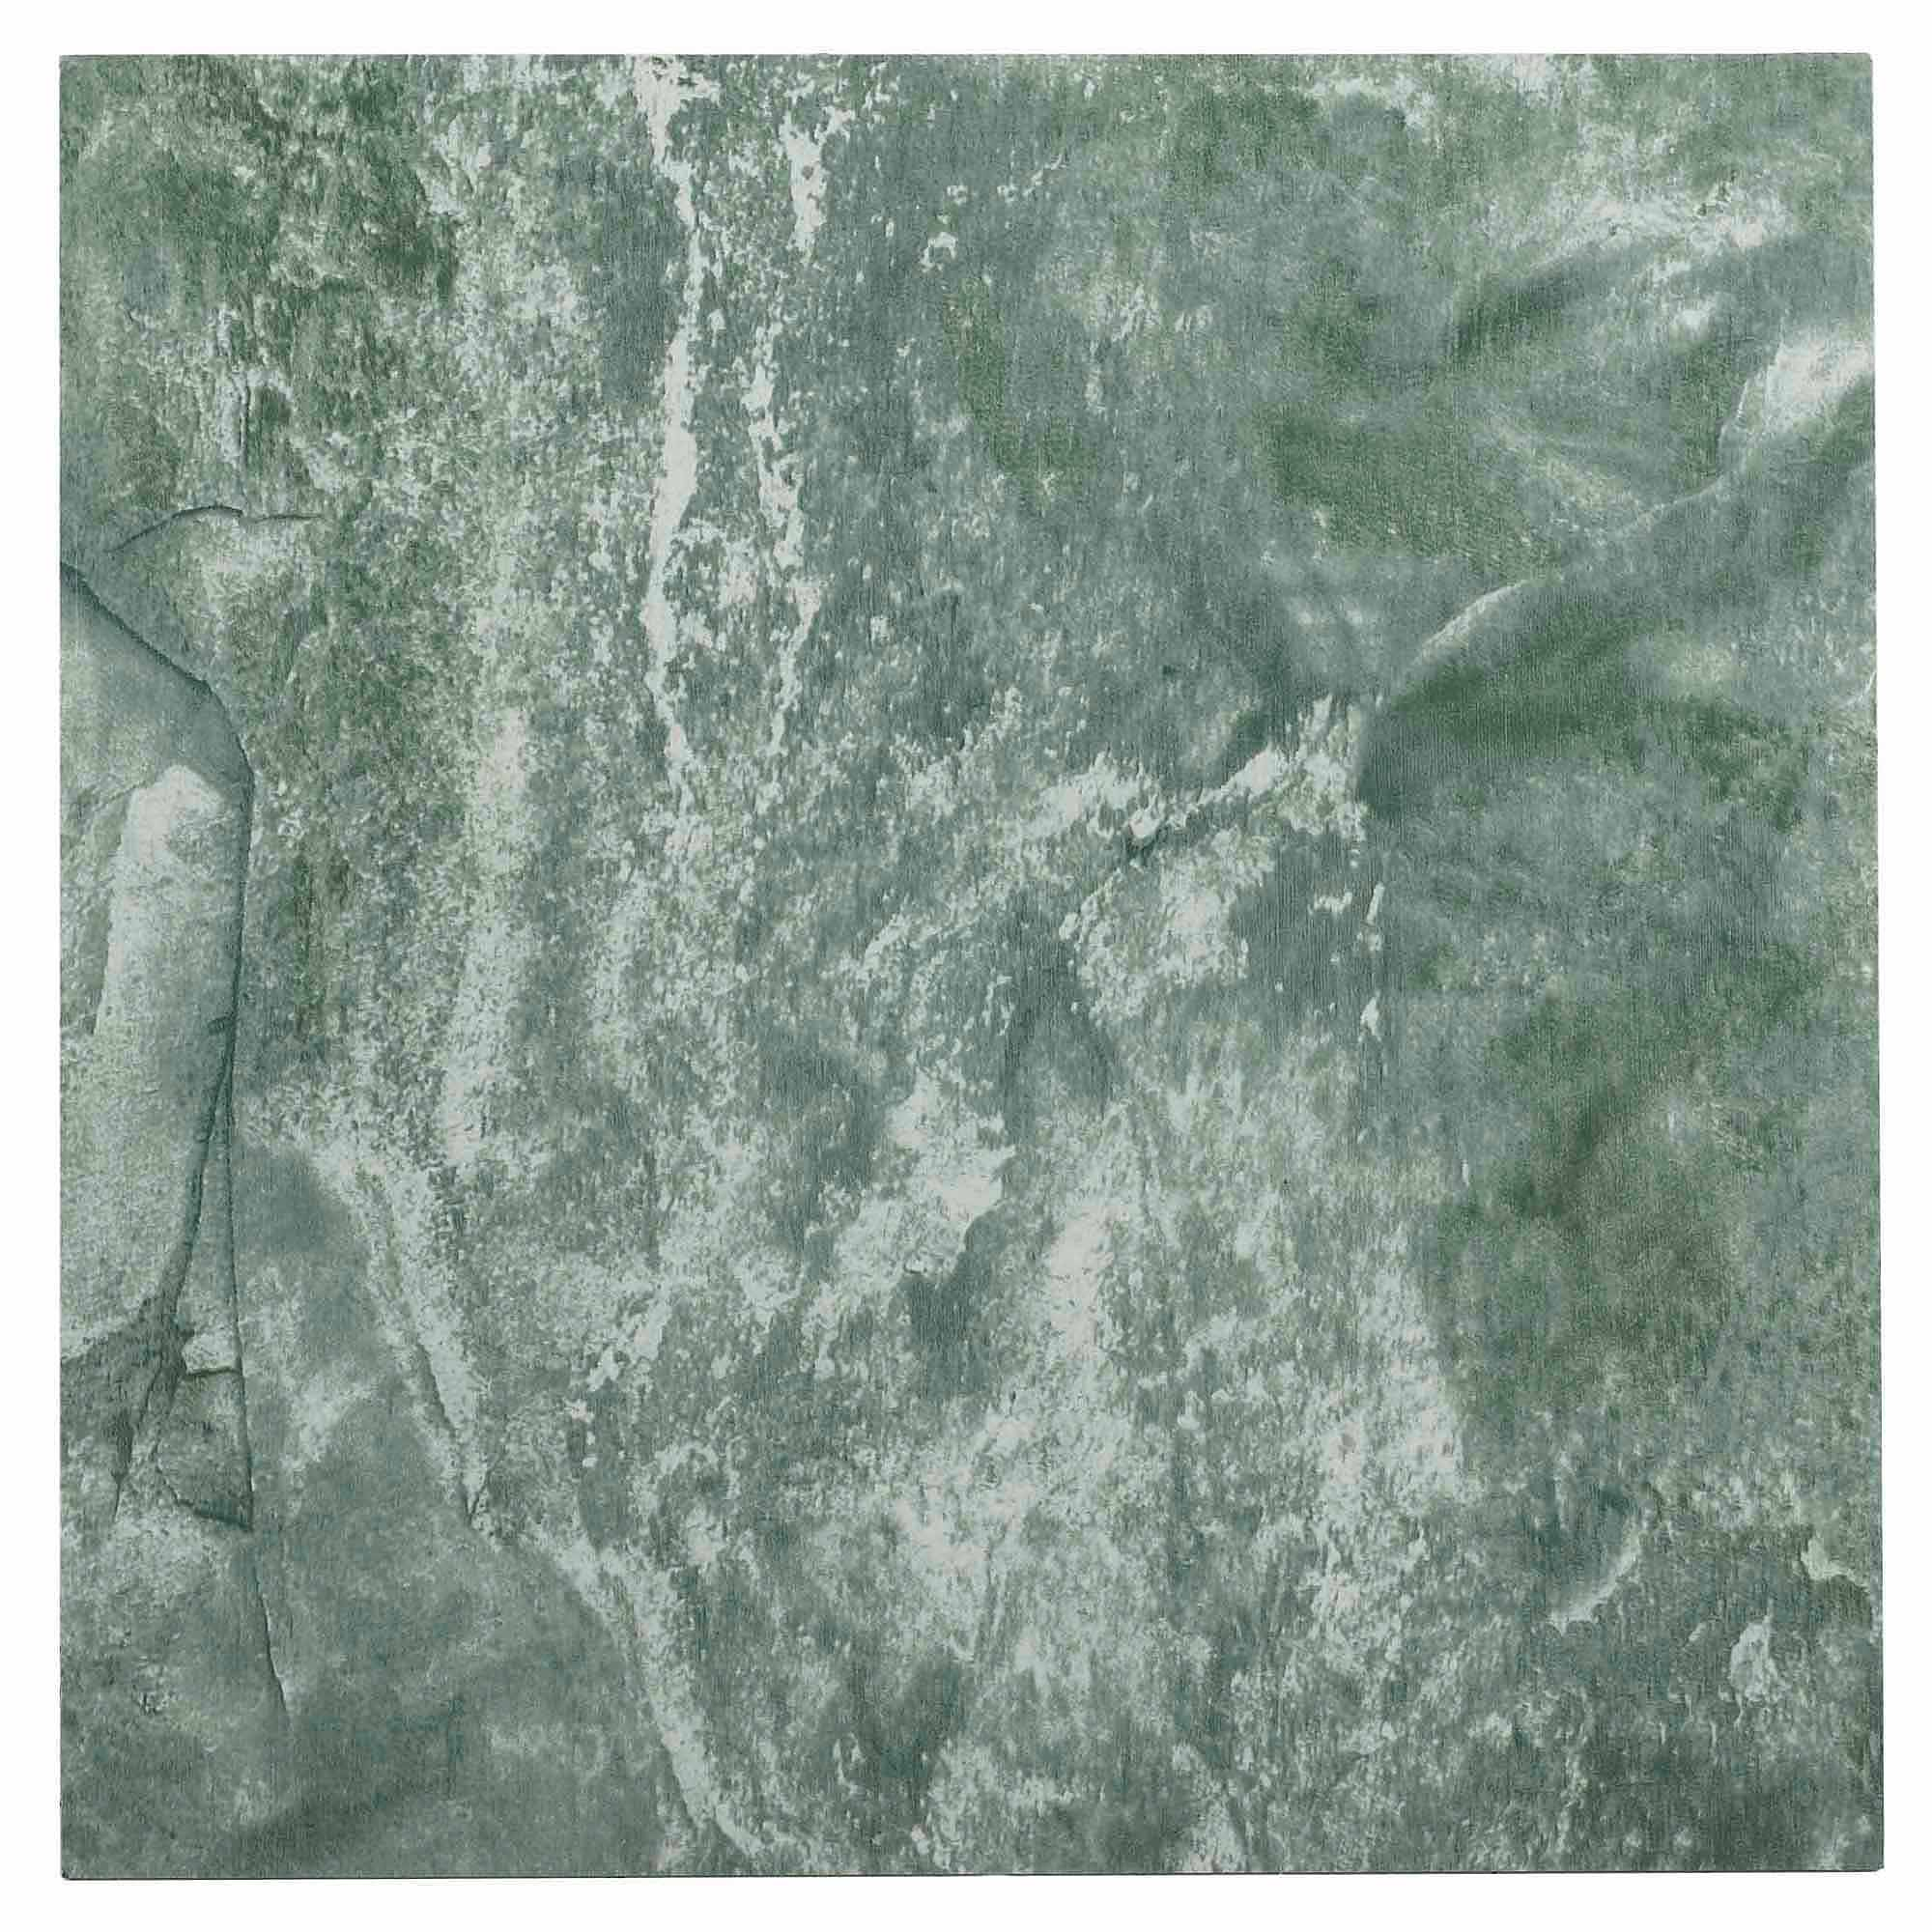 NEXUS Verde Marble Vein 12x12 Self Adhesive Vinyl Floor Tile - 20 Tiles/20 Sq.Ft.